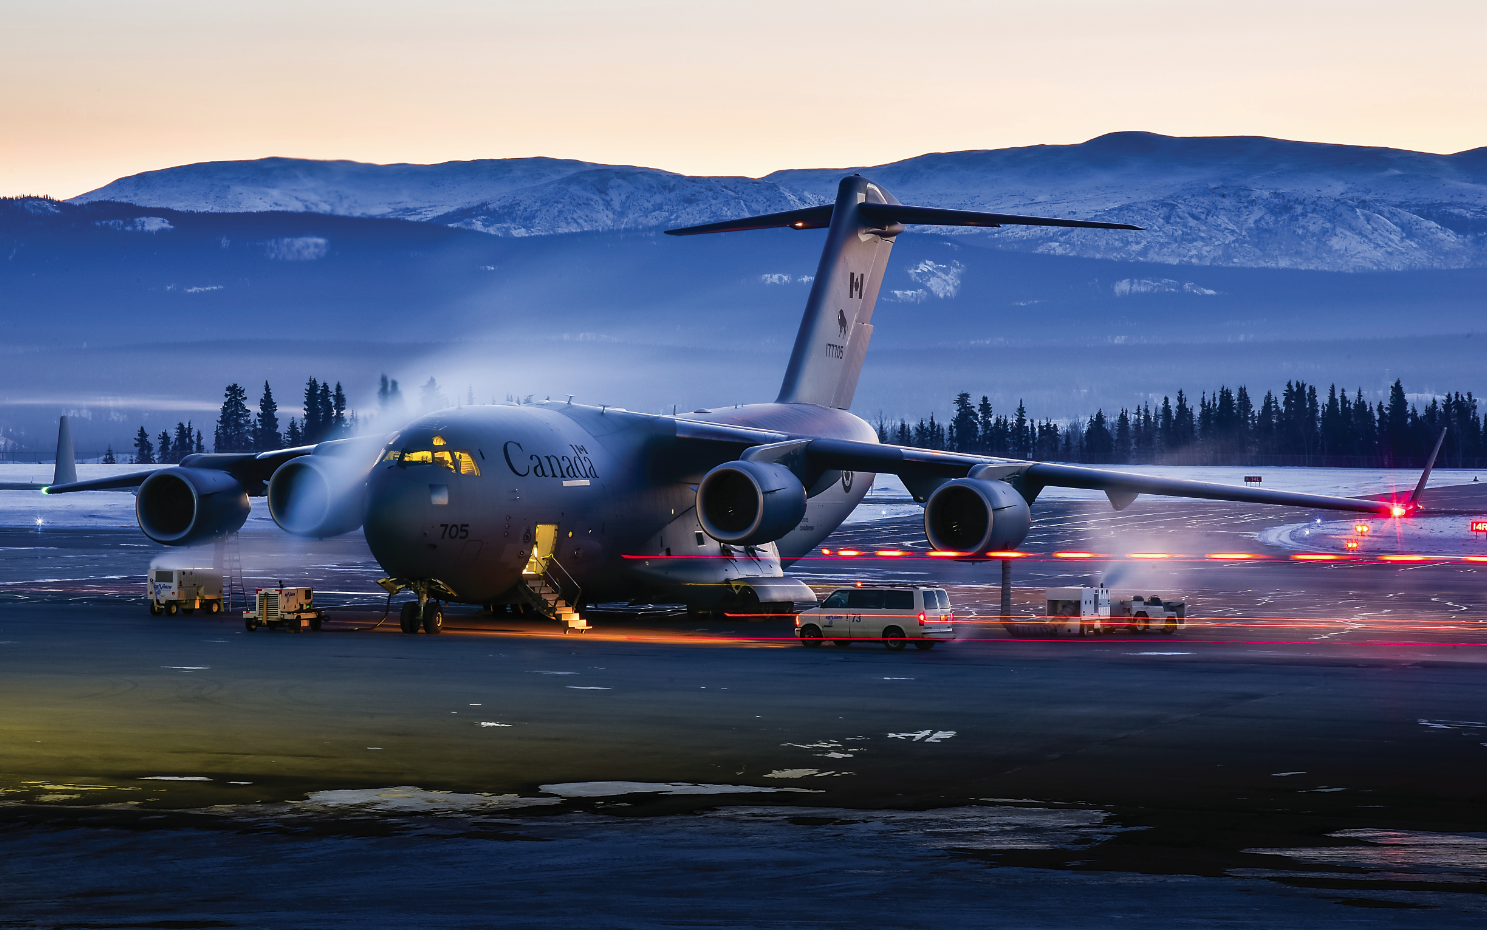 Congrats to Simon Blakesley for winning first place in the Military category in the 2018 Skies Photo Contest! A 20-second time exposure captured this Royal Canadian Air Force 429 Squadron CC-177 Globemaster III as it prepared to depart CYXY on a -35 C morning.